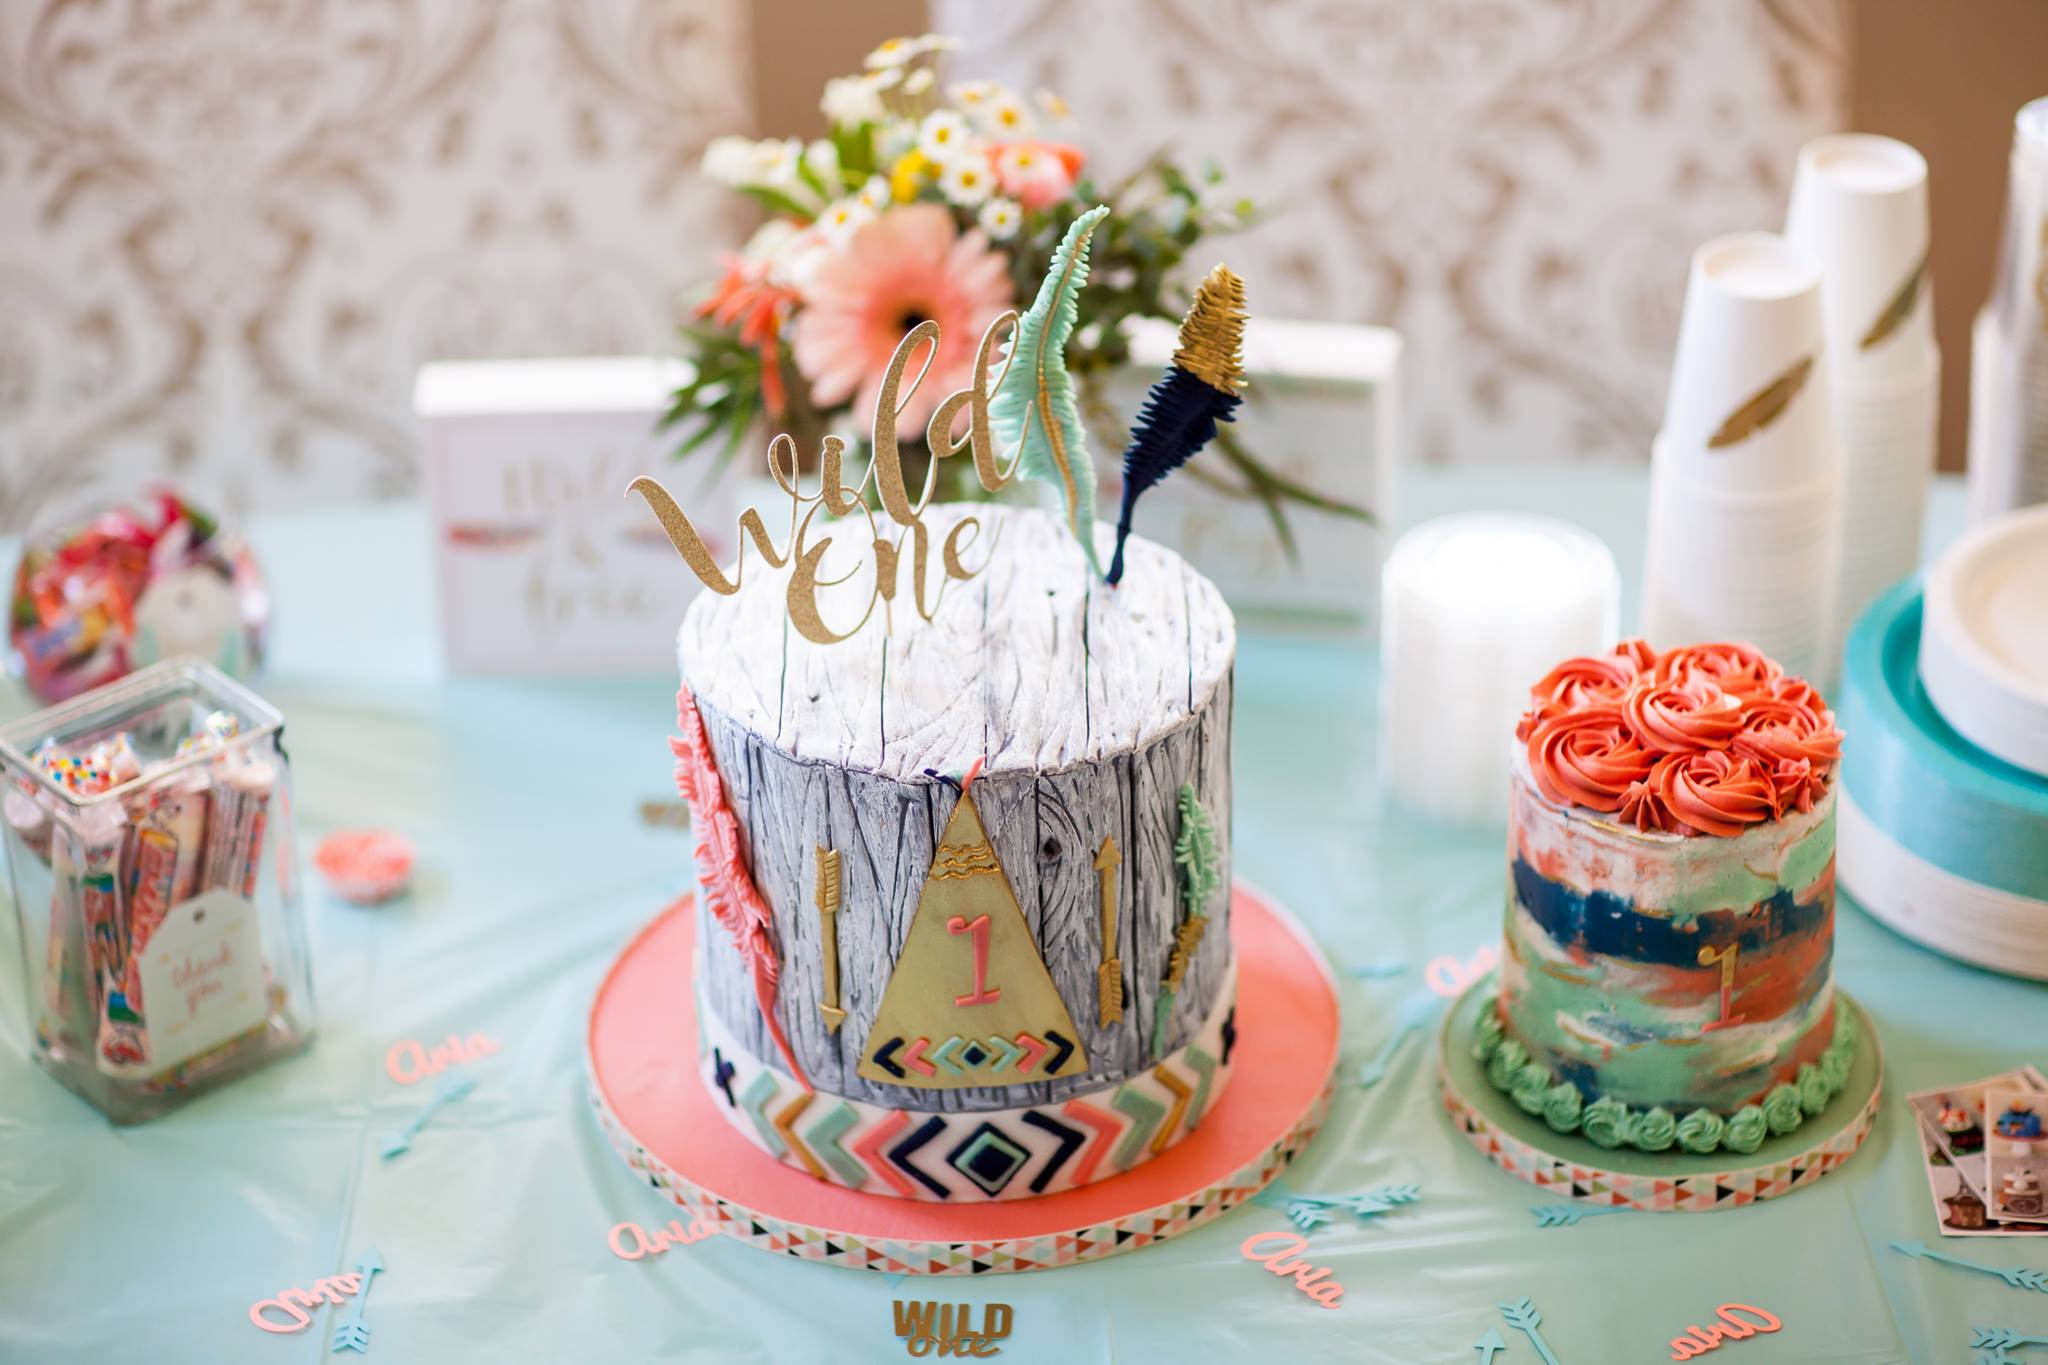 Bohemian Cake.  (Photo Credits to Marianeoverton Photography)